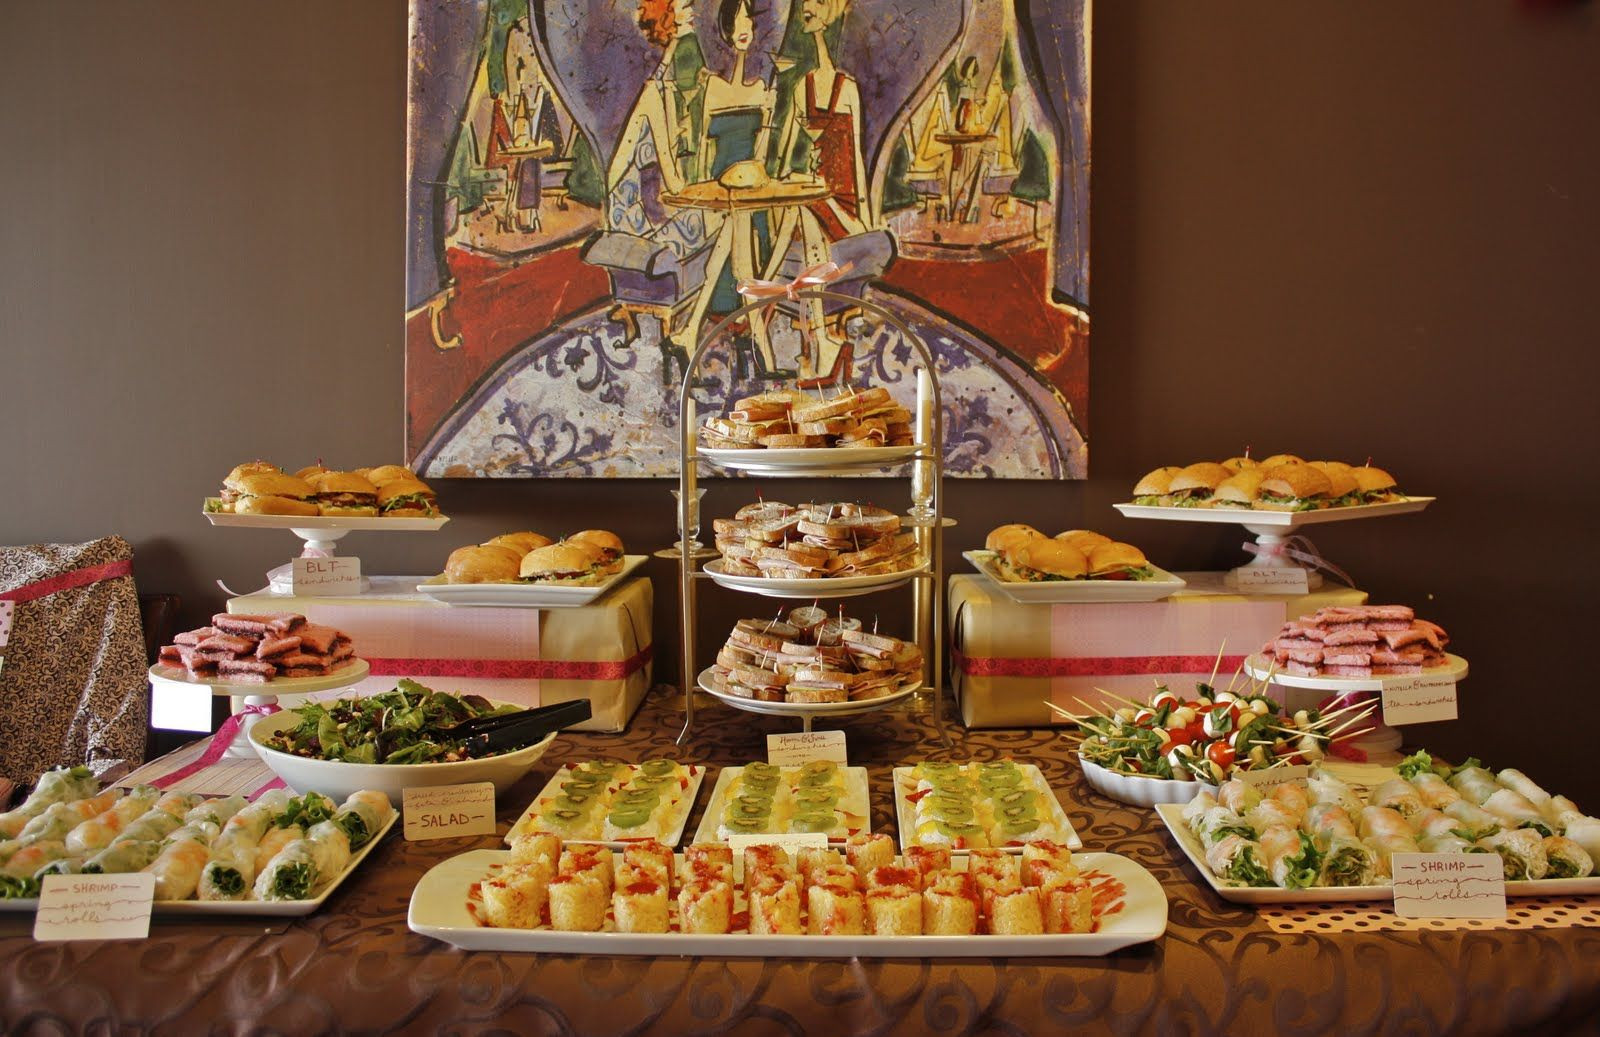 Best ideas about Baby Shower Food Table . Save or Pin baby shower food table display Now.